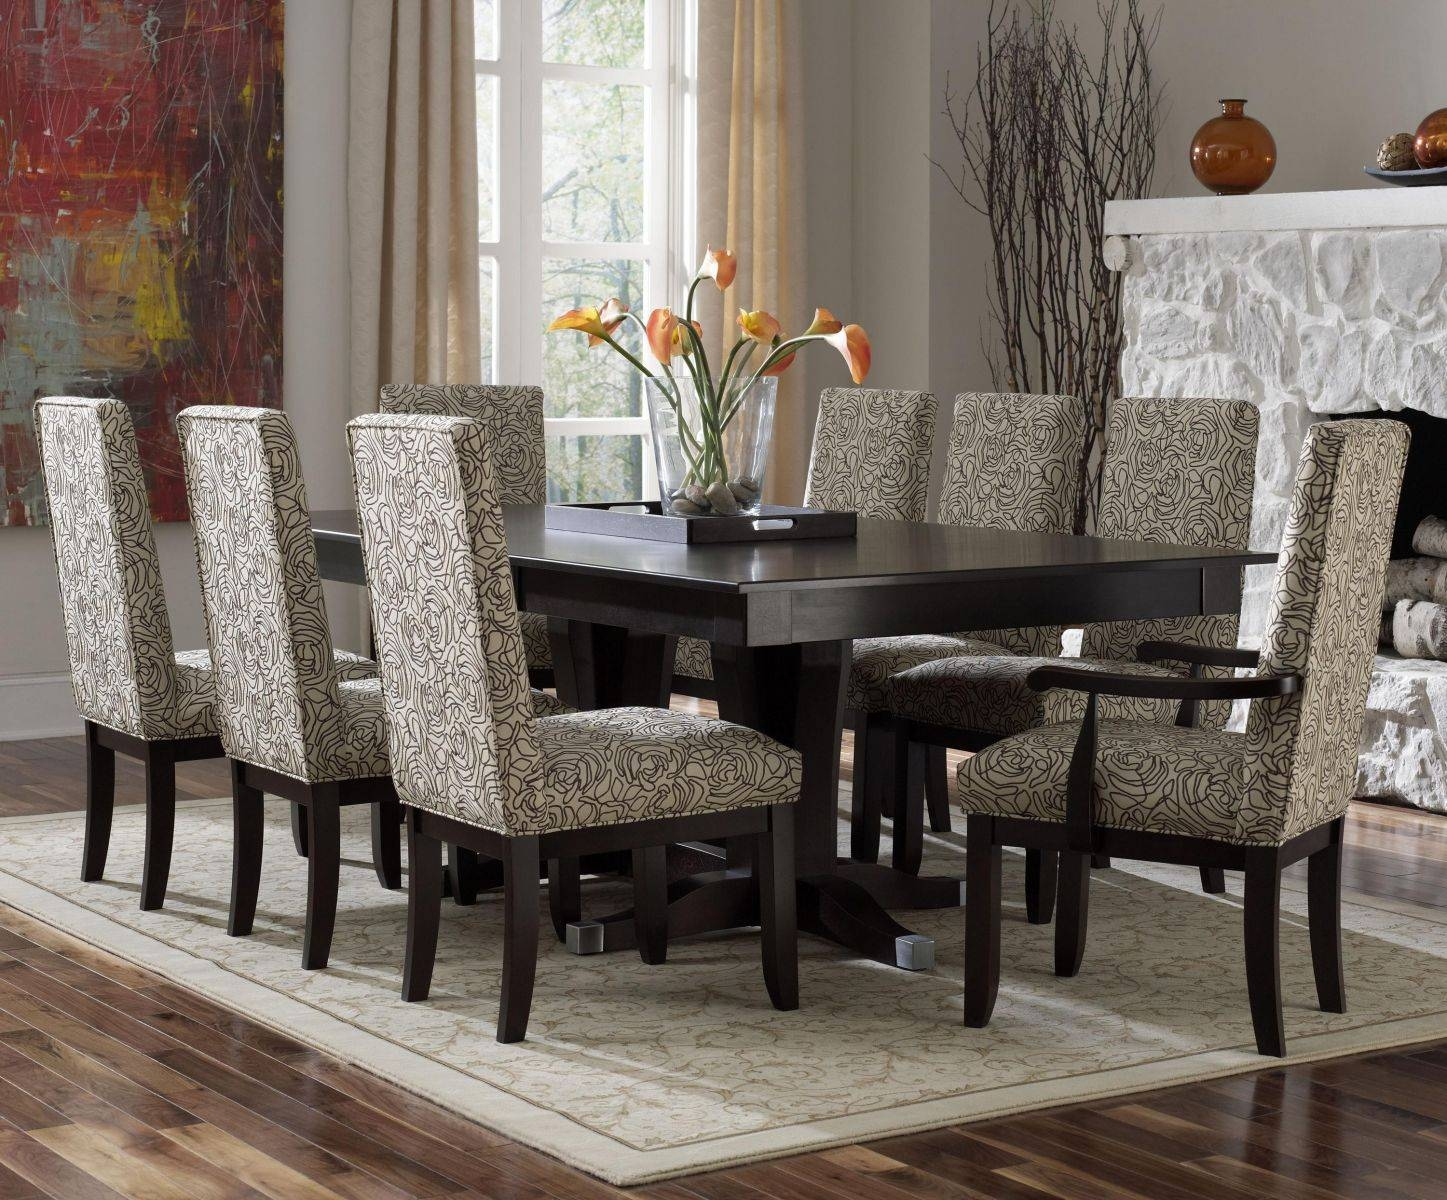 Purple Leather Backrest Chair Stainless Legs Elegant Violet High Inside Most Current Dining Room Sets With Sideboards (#15 of 15)